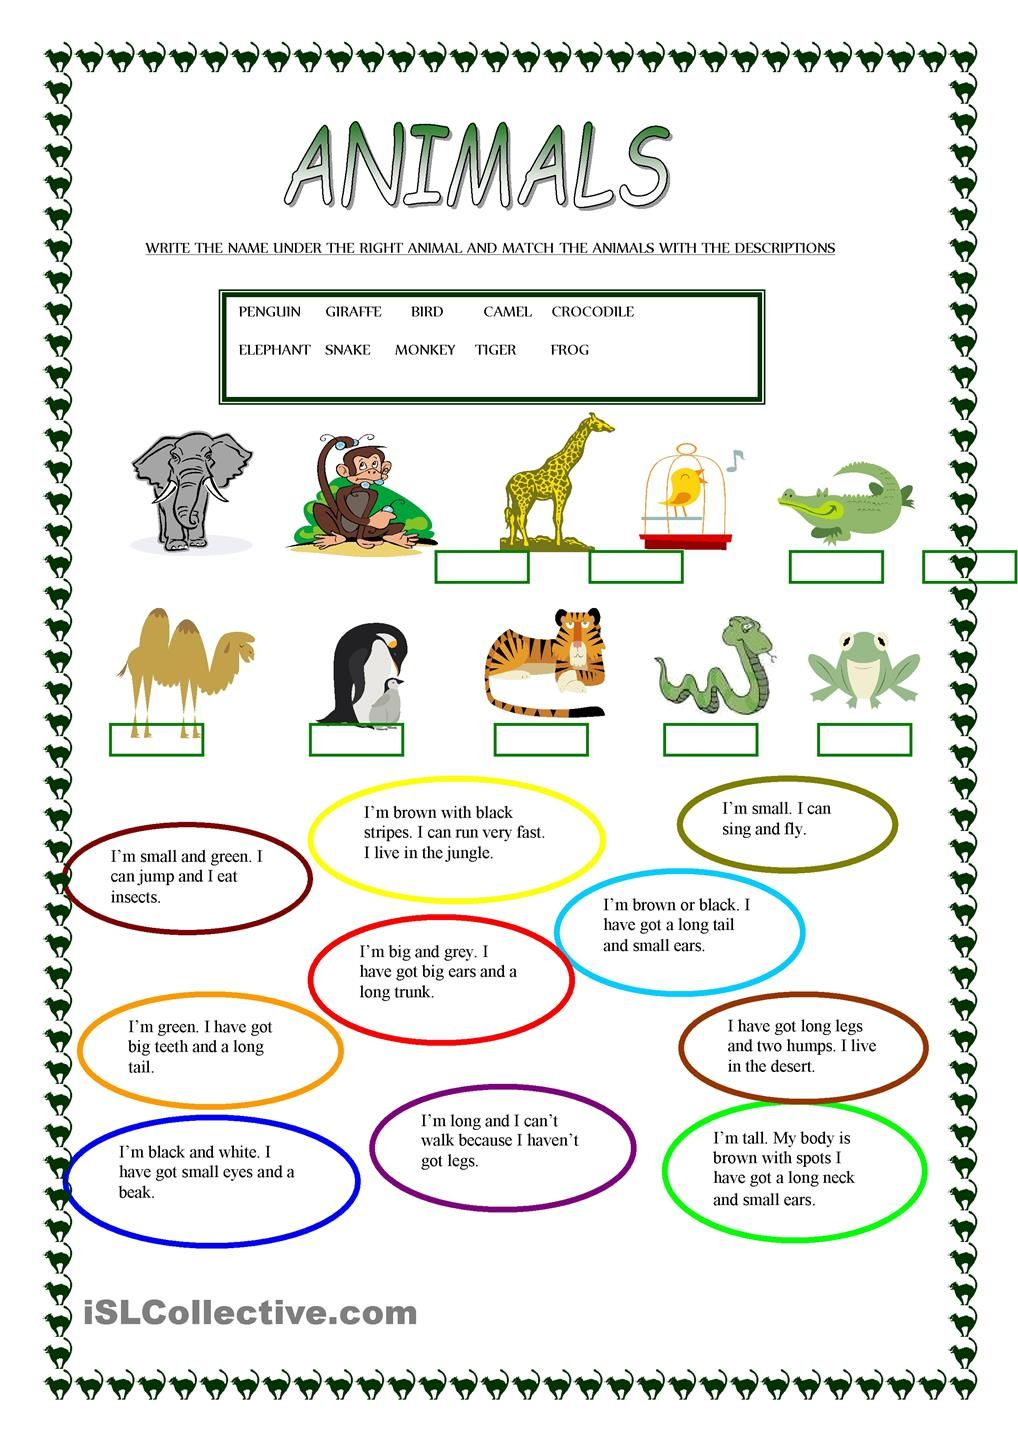 Animals | Free Esl Worksheets | Teachers Resources | Pinterest - Free Printable Esl Resources